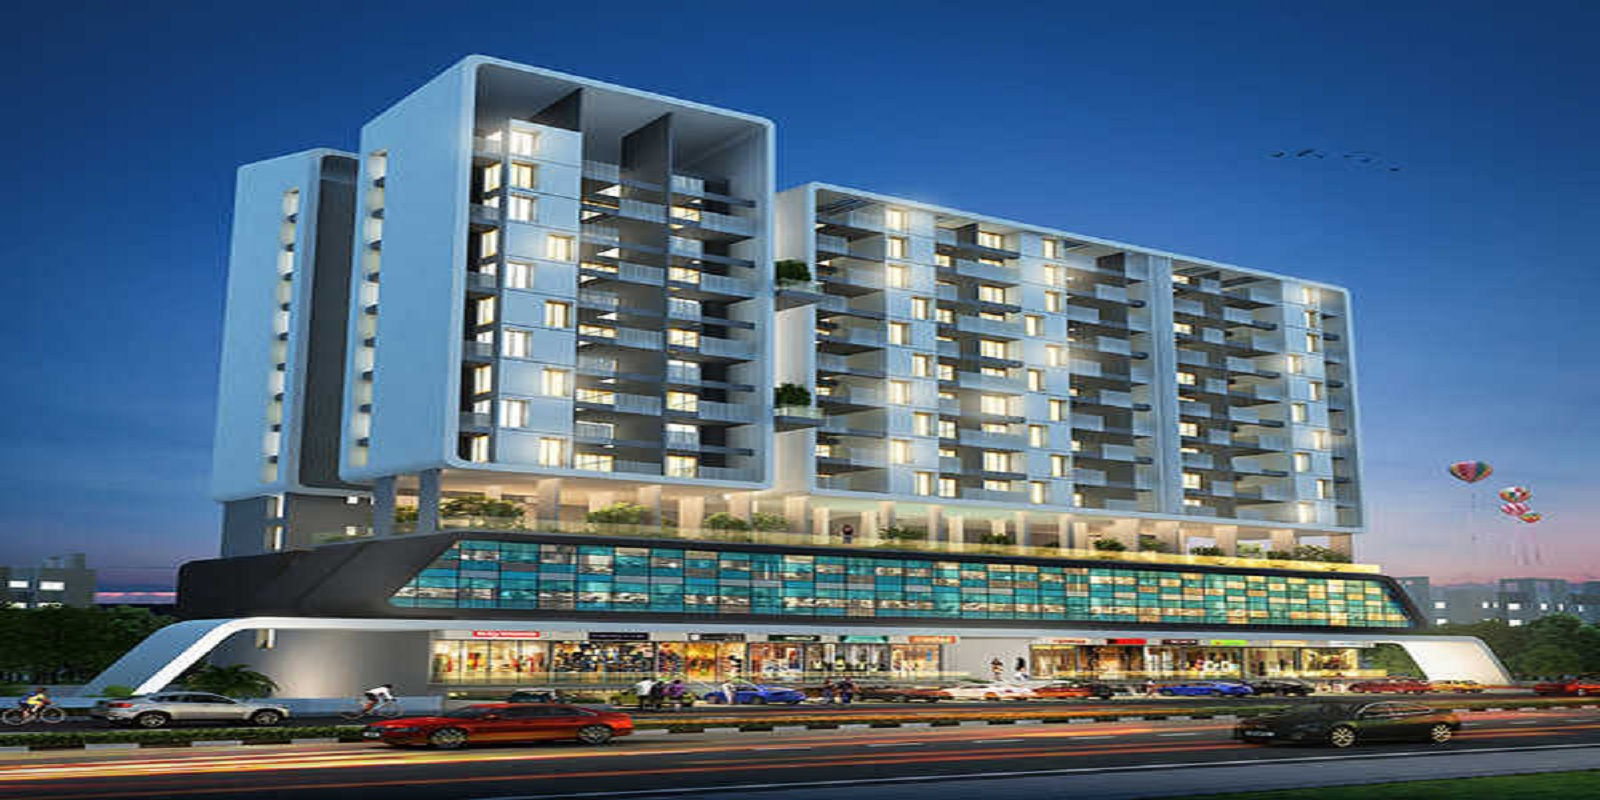 saarrthi success square project project large image1